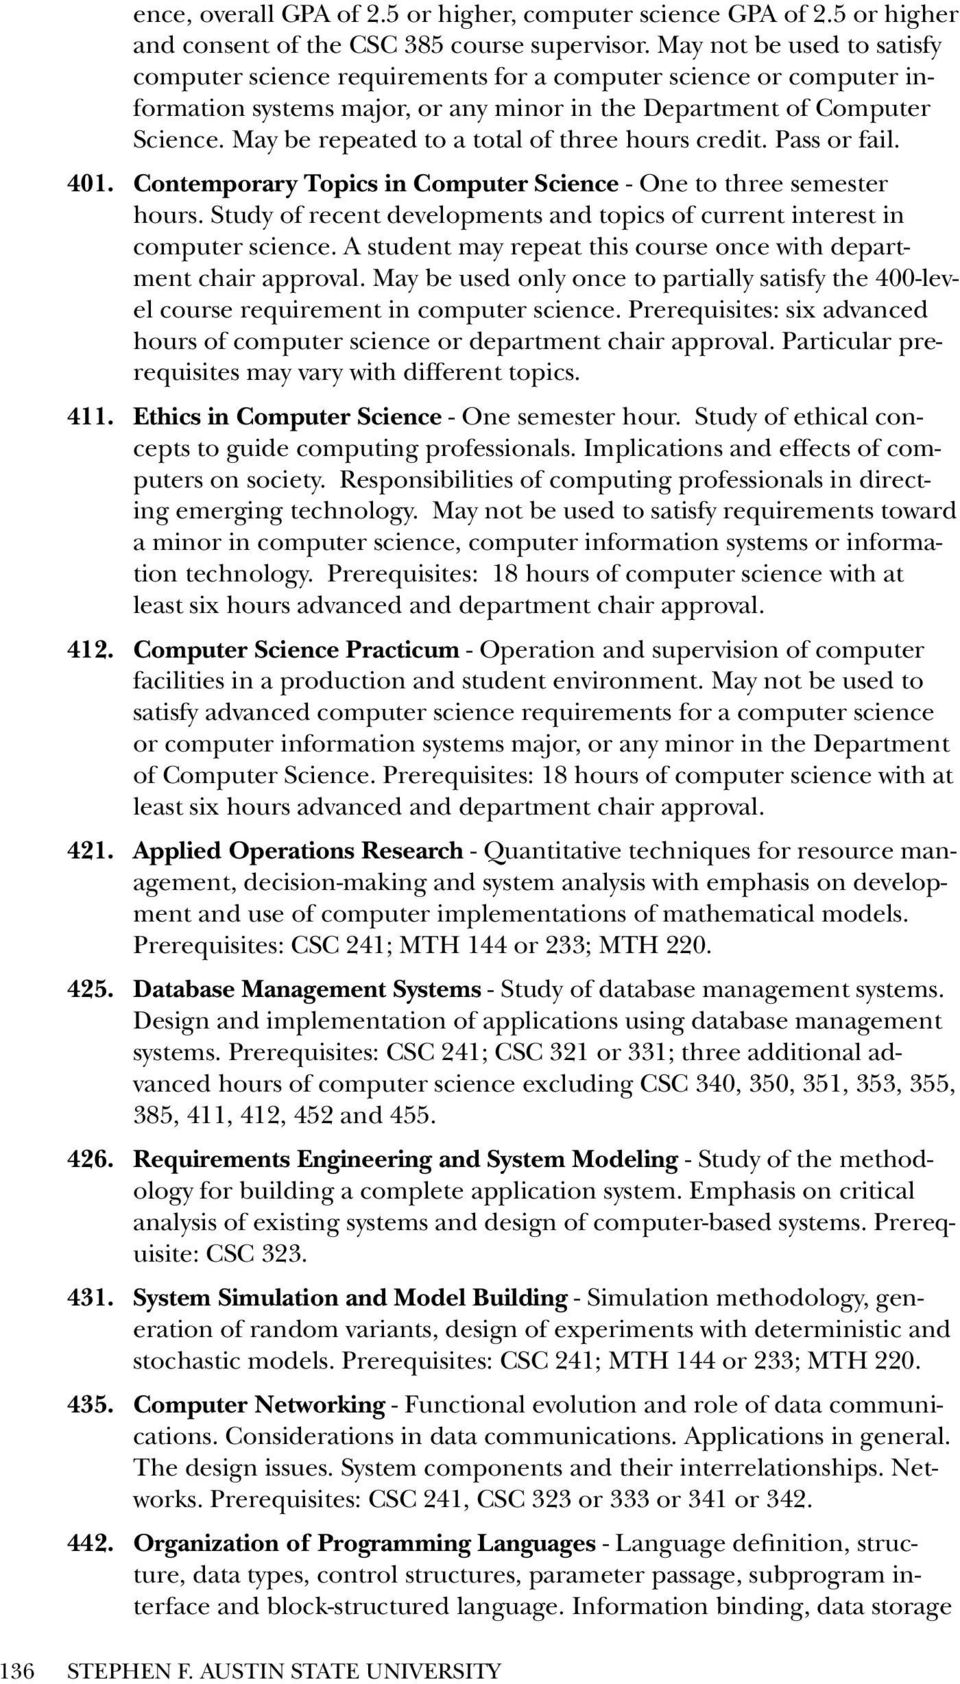 May be repeated to a total of three hours credit. Pass or fail. 401. Contemporary Topics in Computer Science - One to three semester hours.